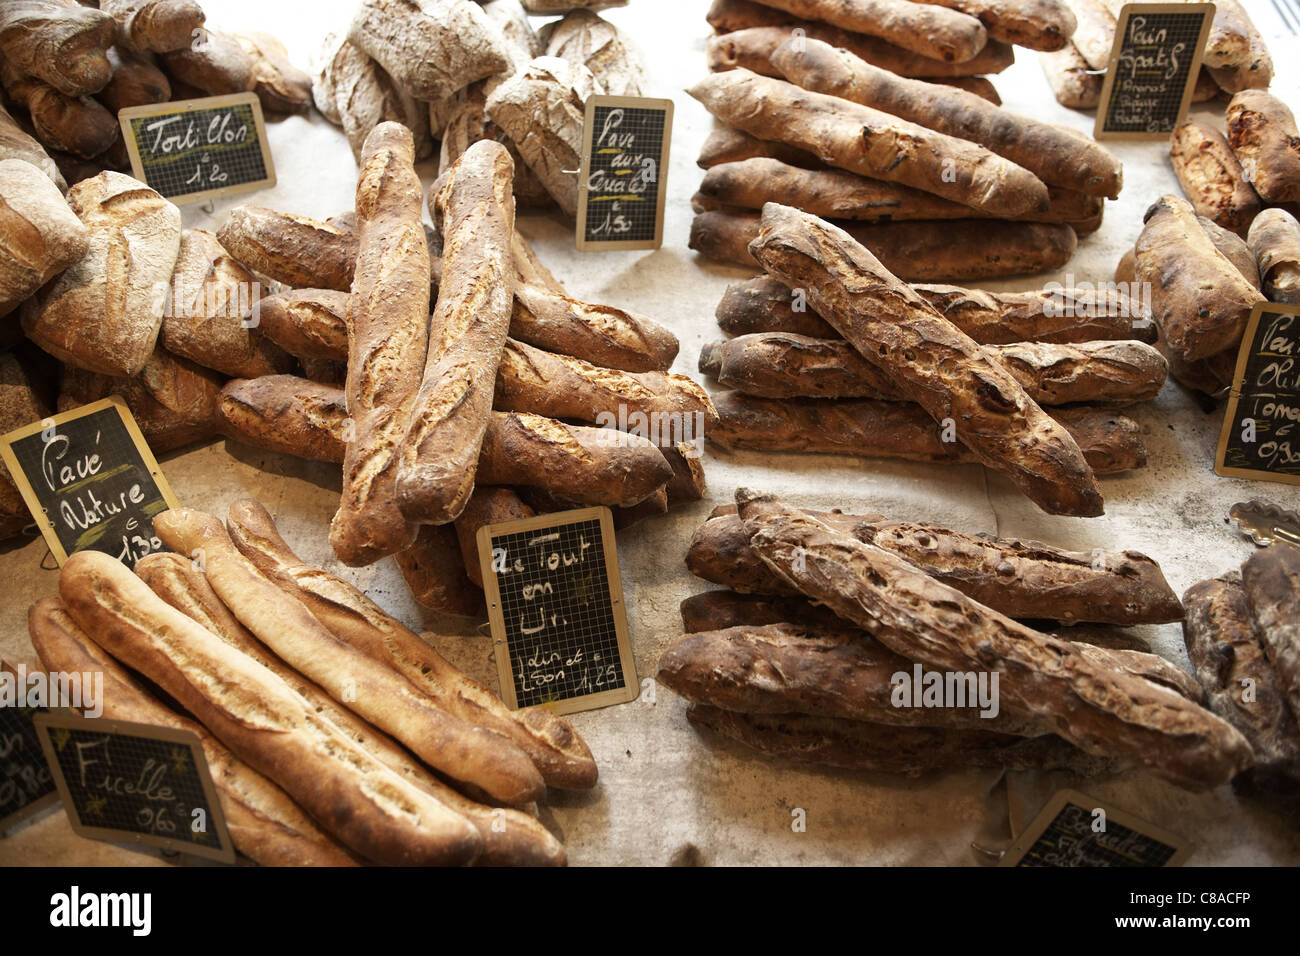 Selection of breads - Stock Image